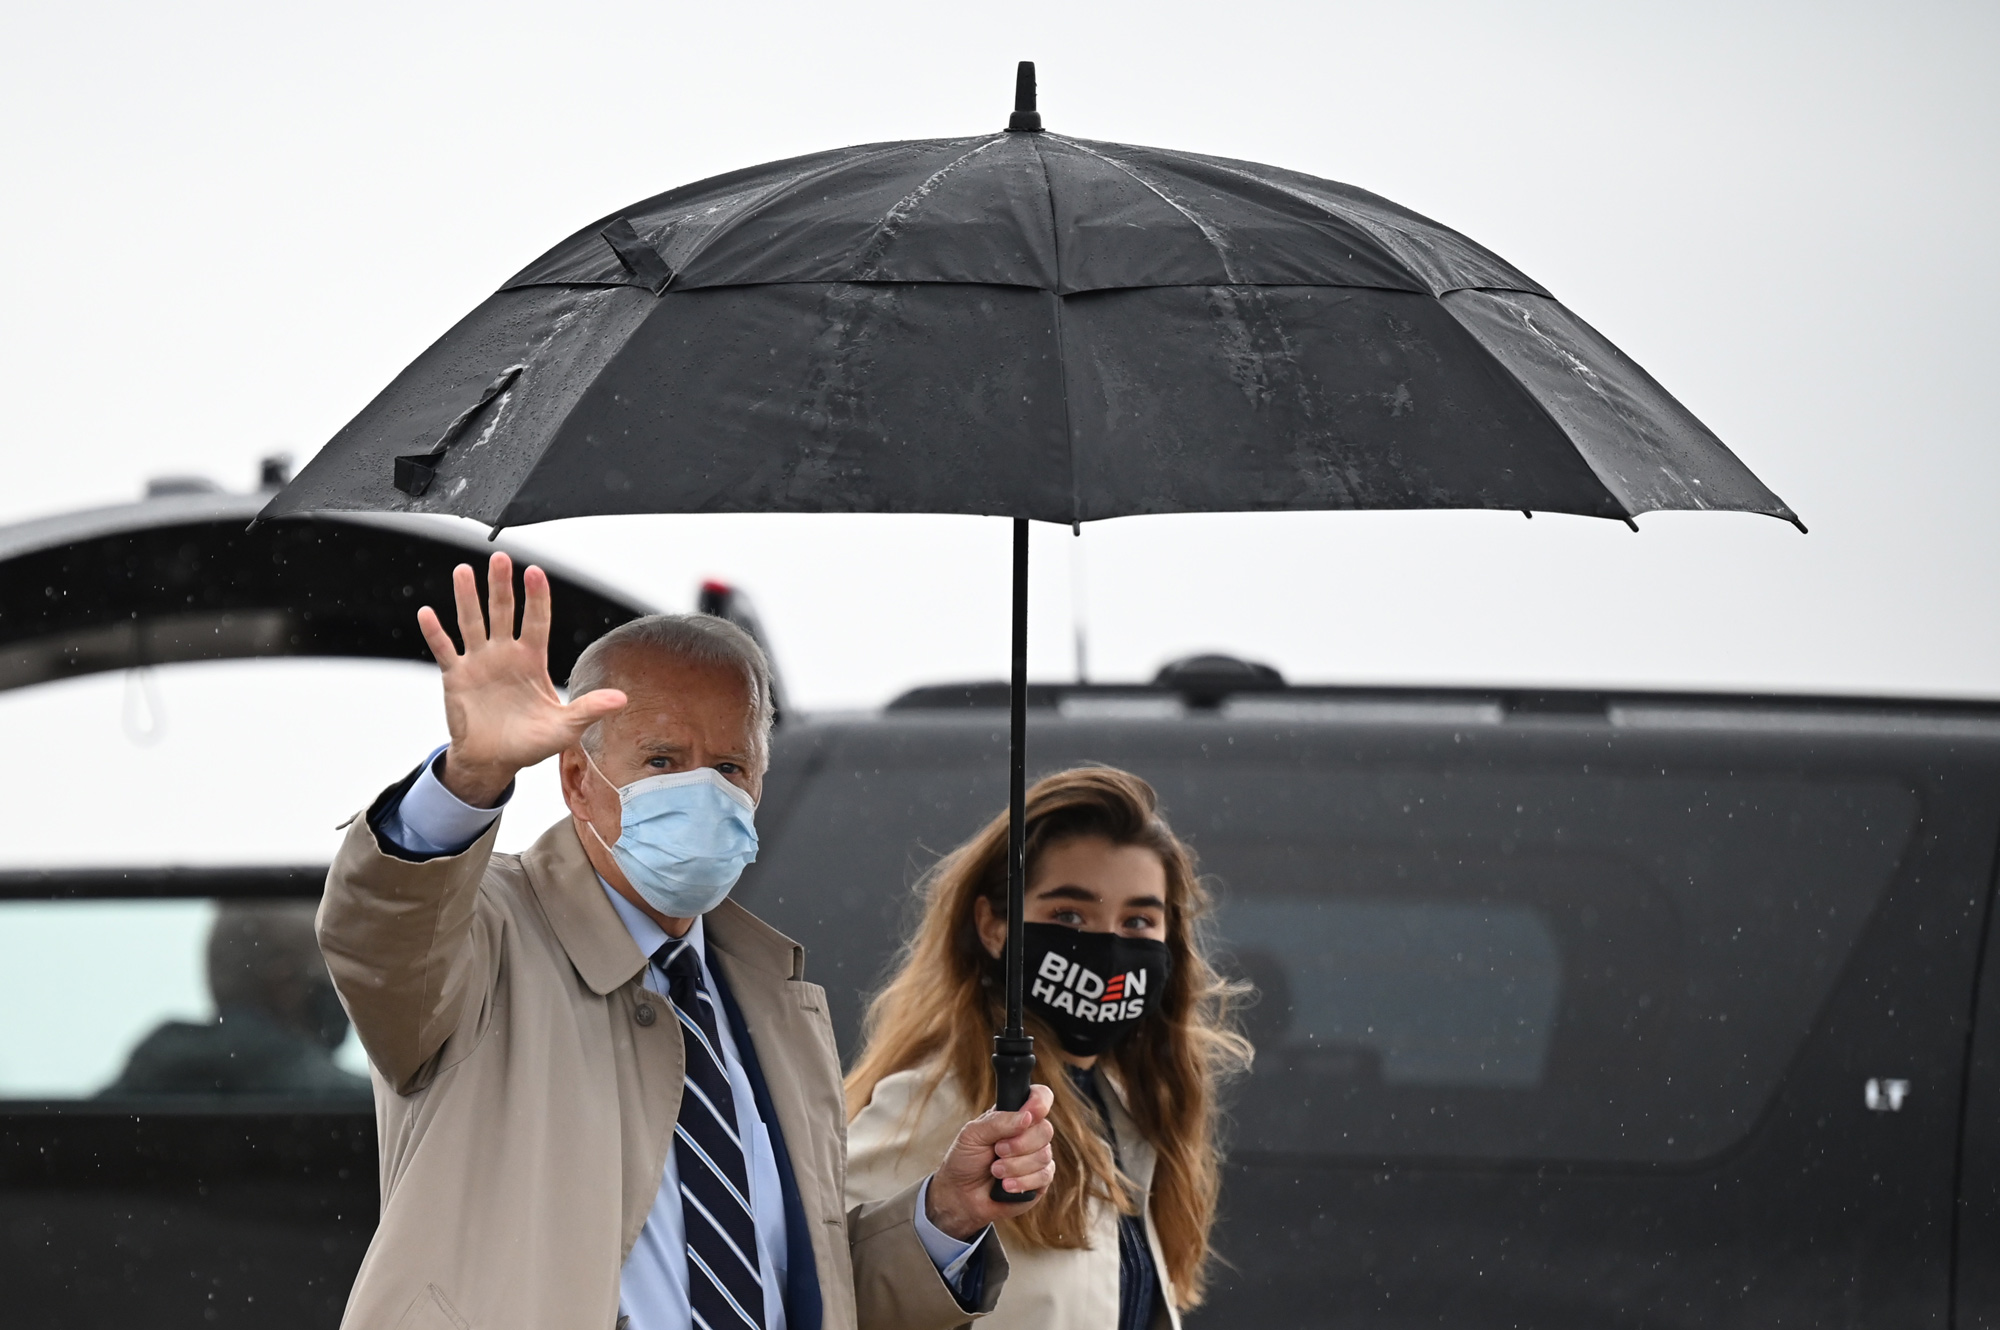 Democratic presidential candidate Joe Biden arrives to board his plane in New Castle, Delaware, on October 29.